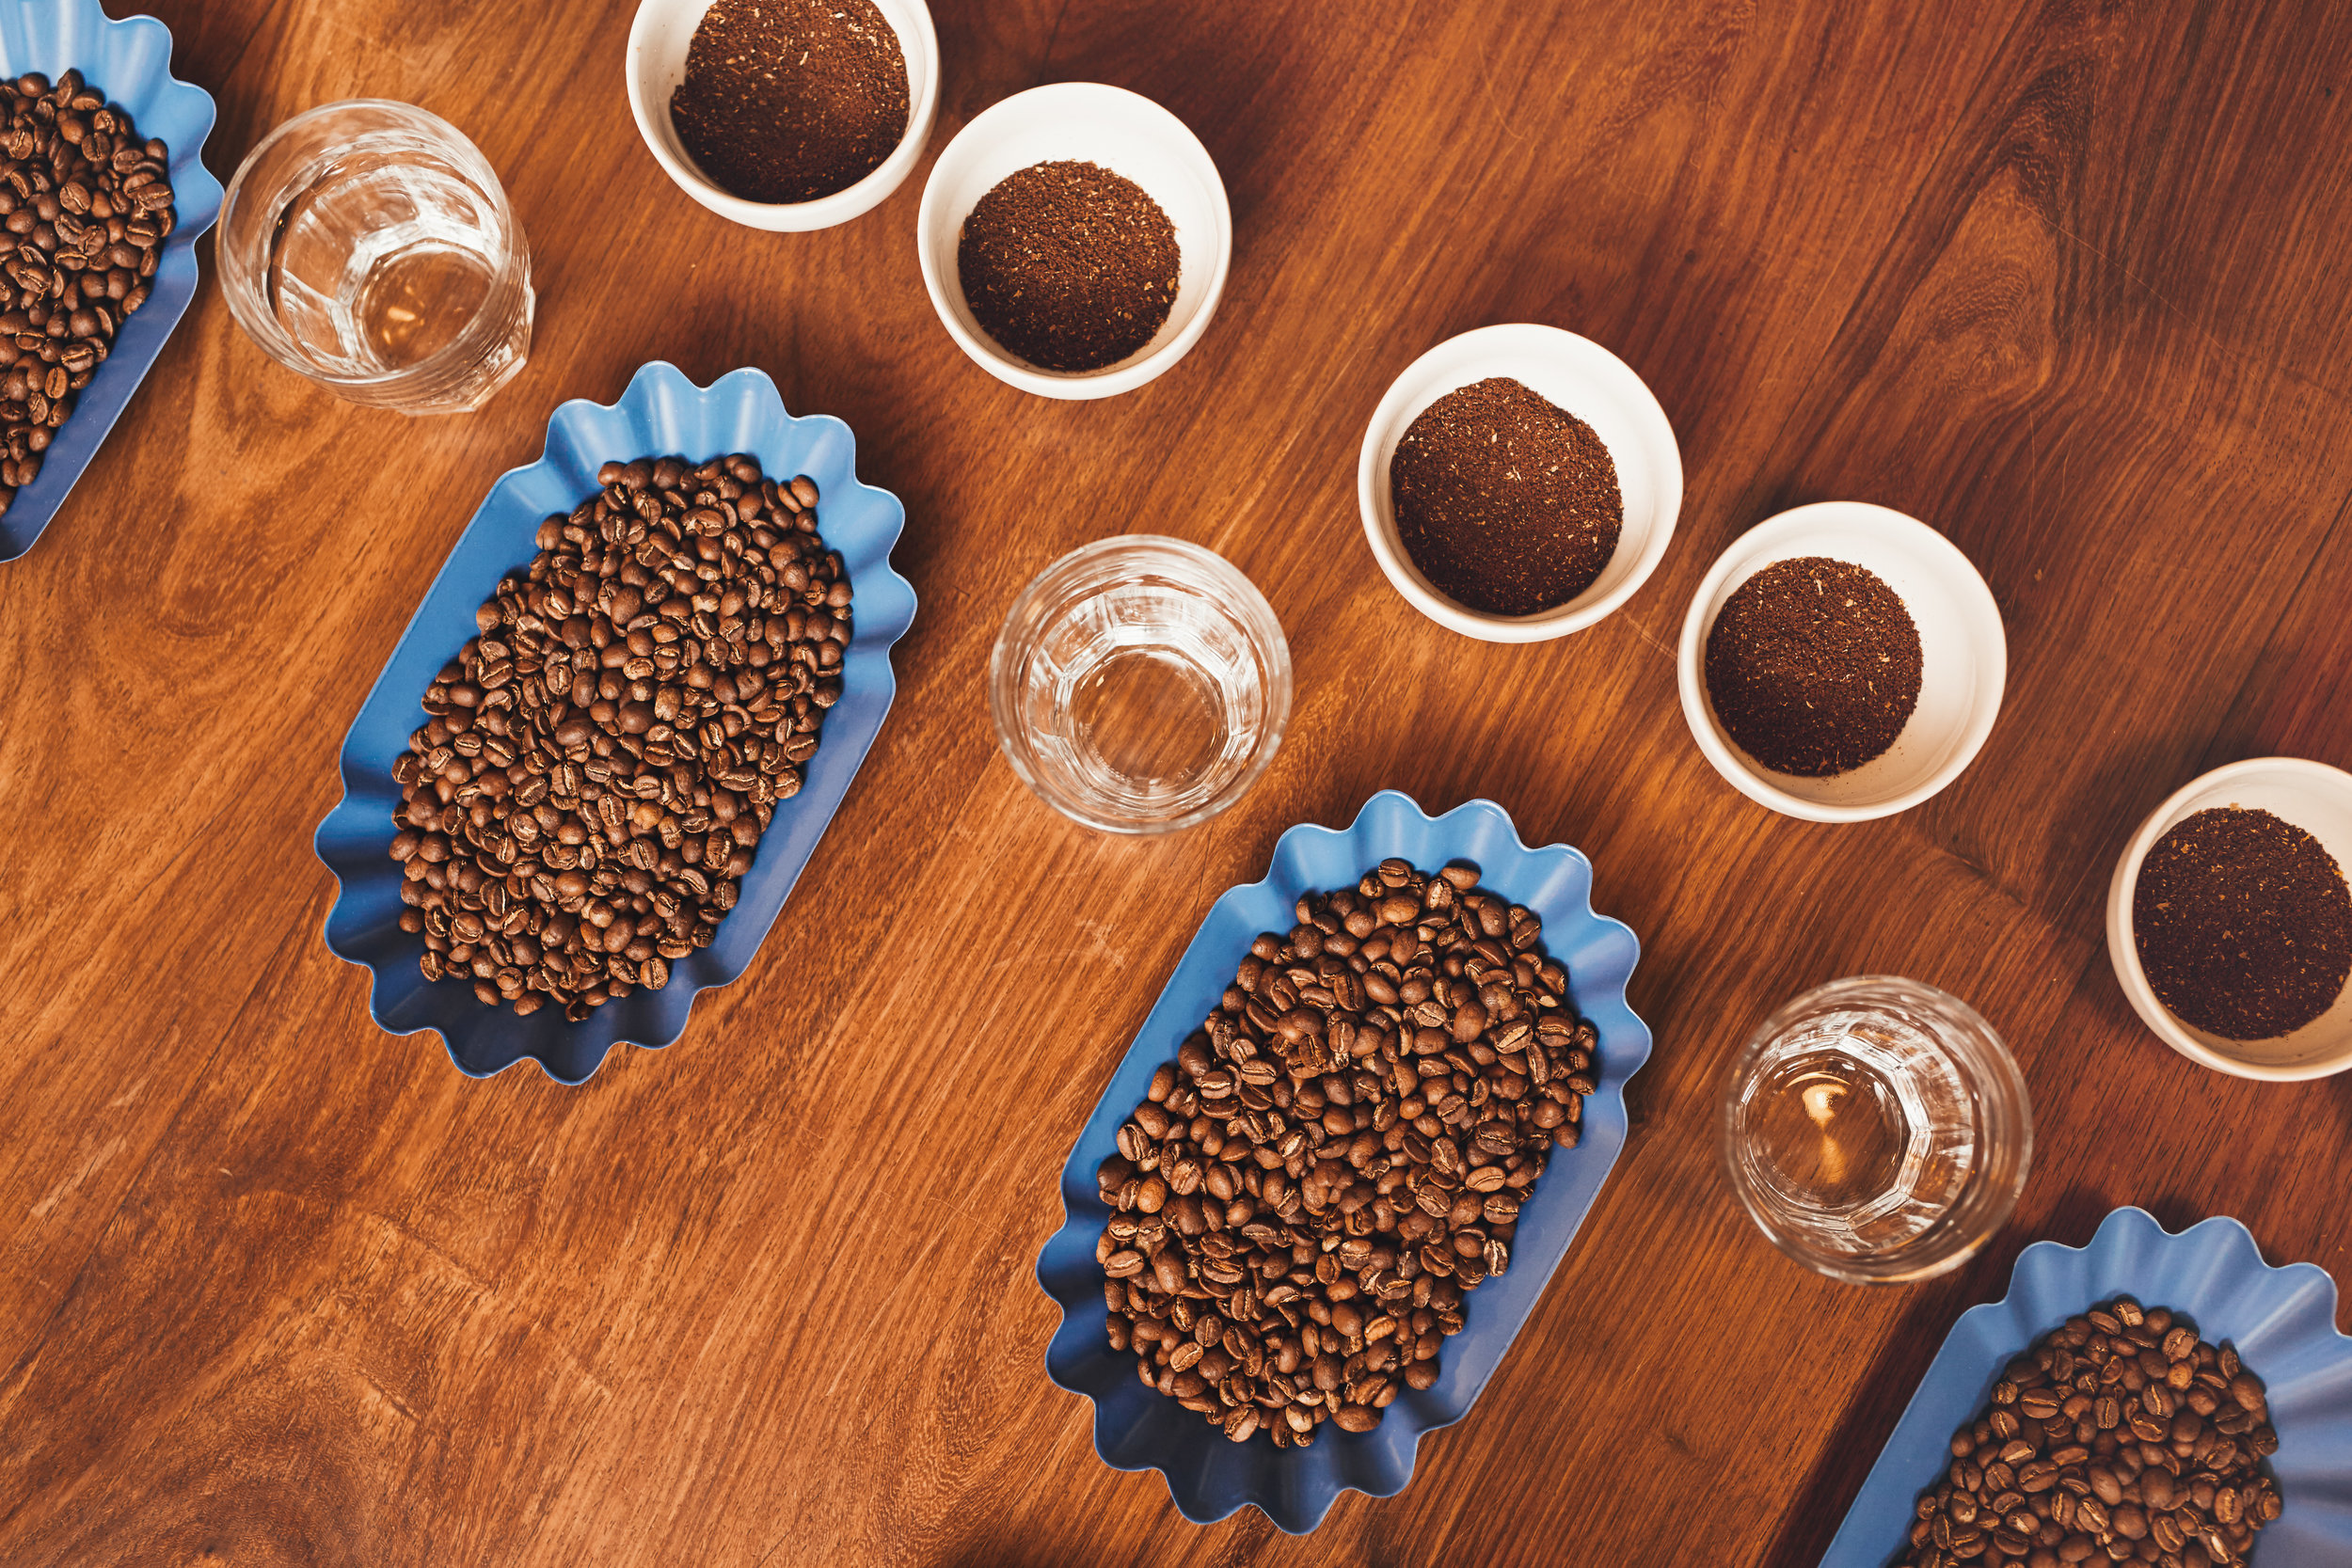 cupping page image.jpg